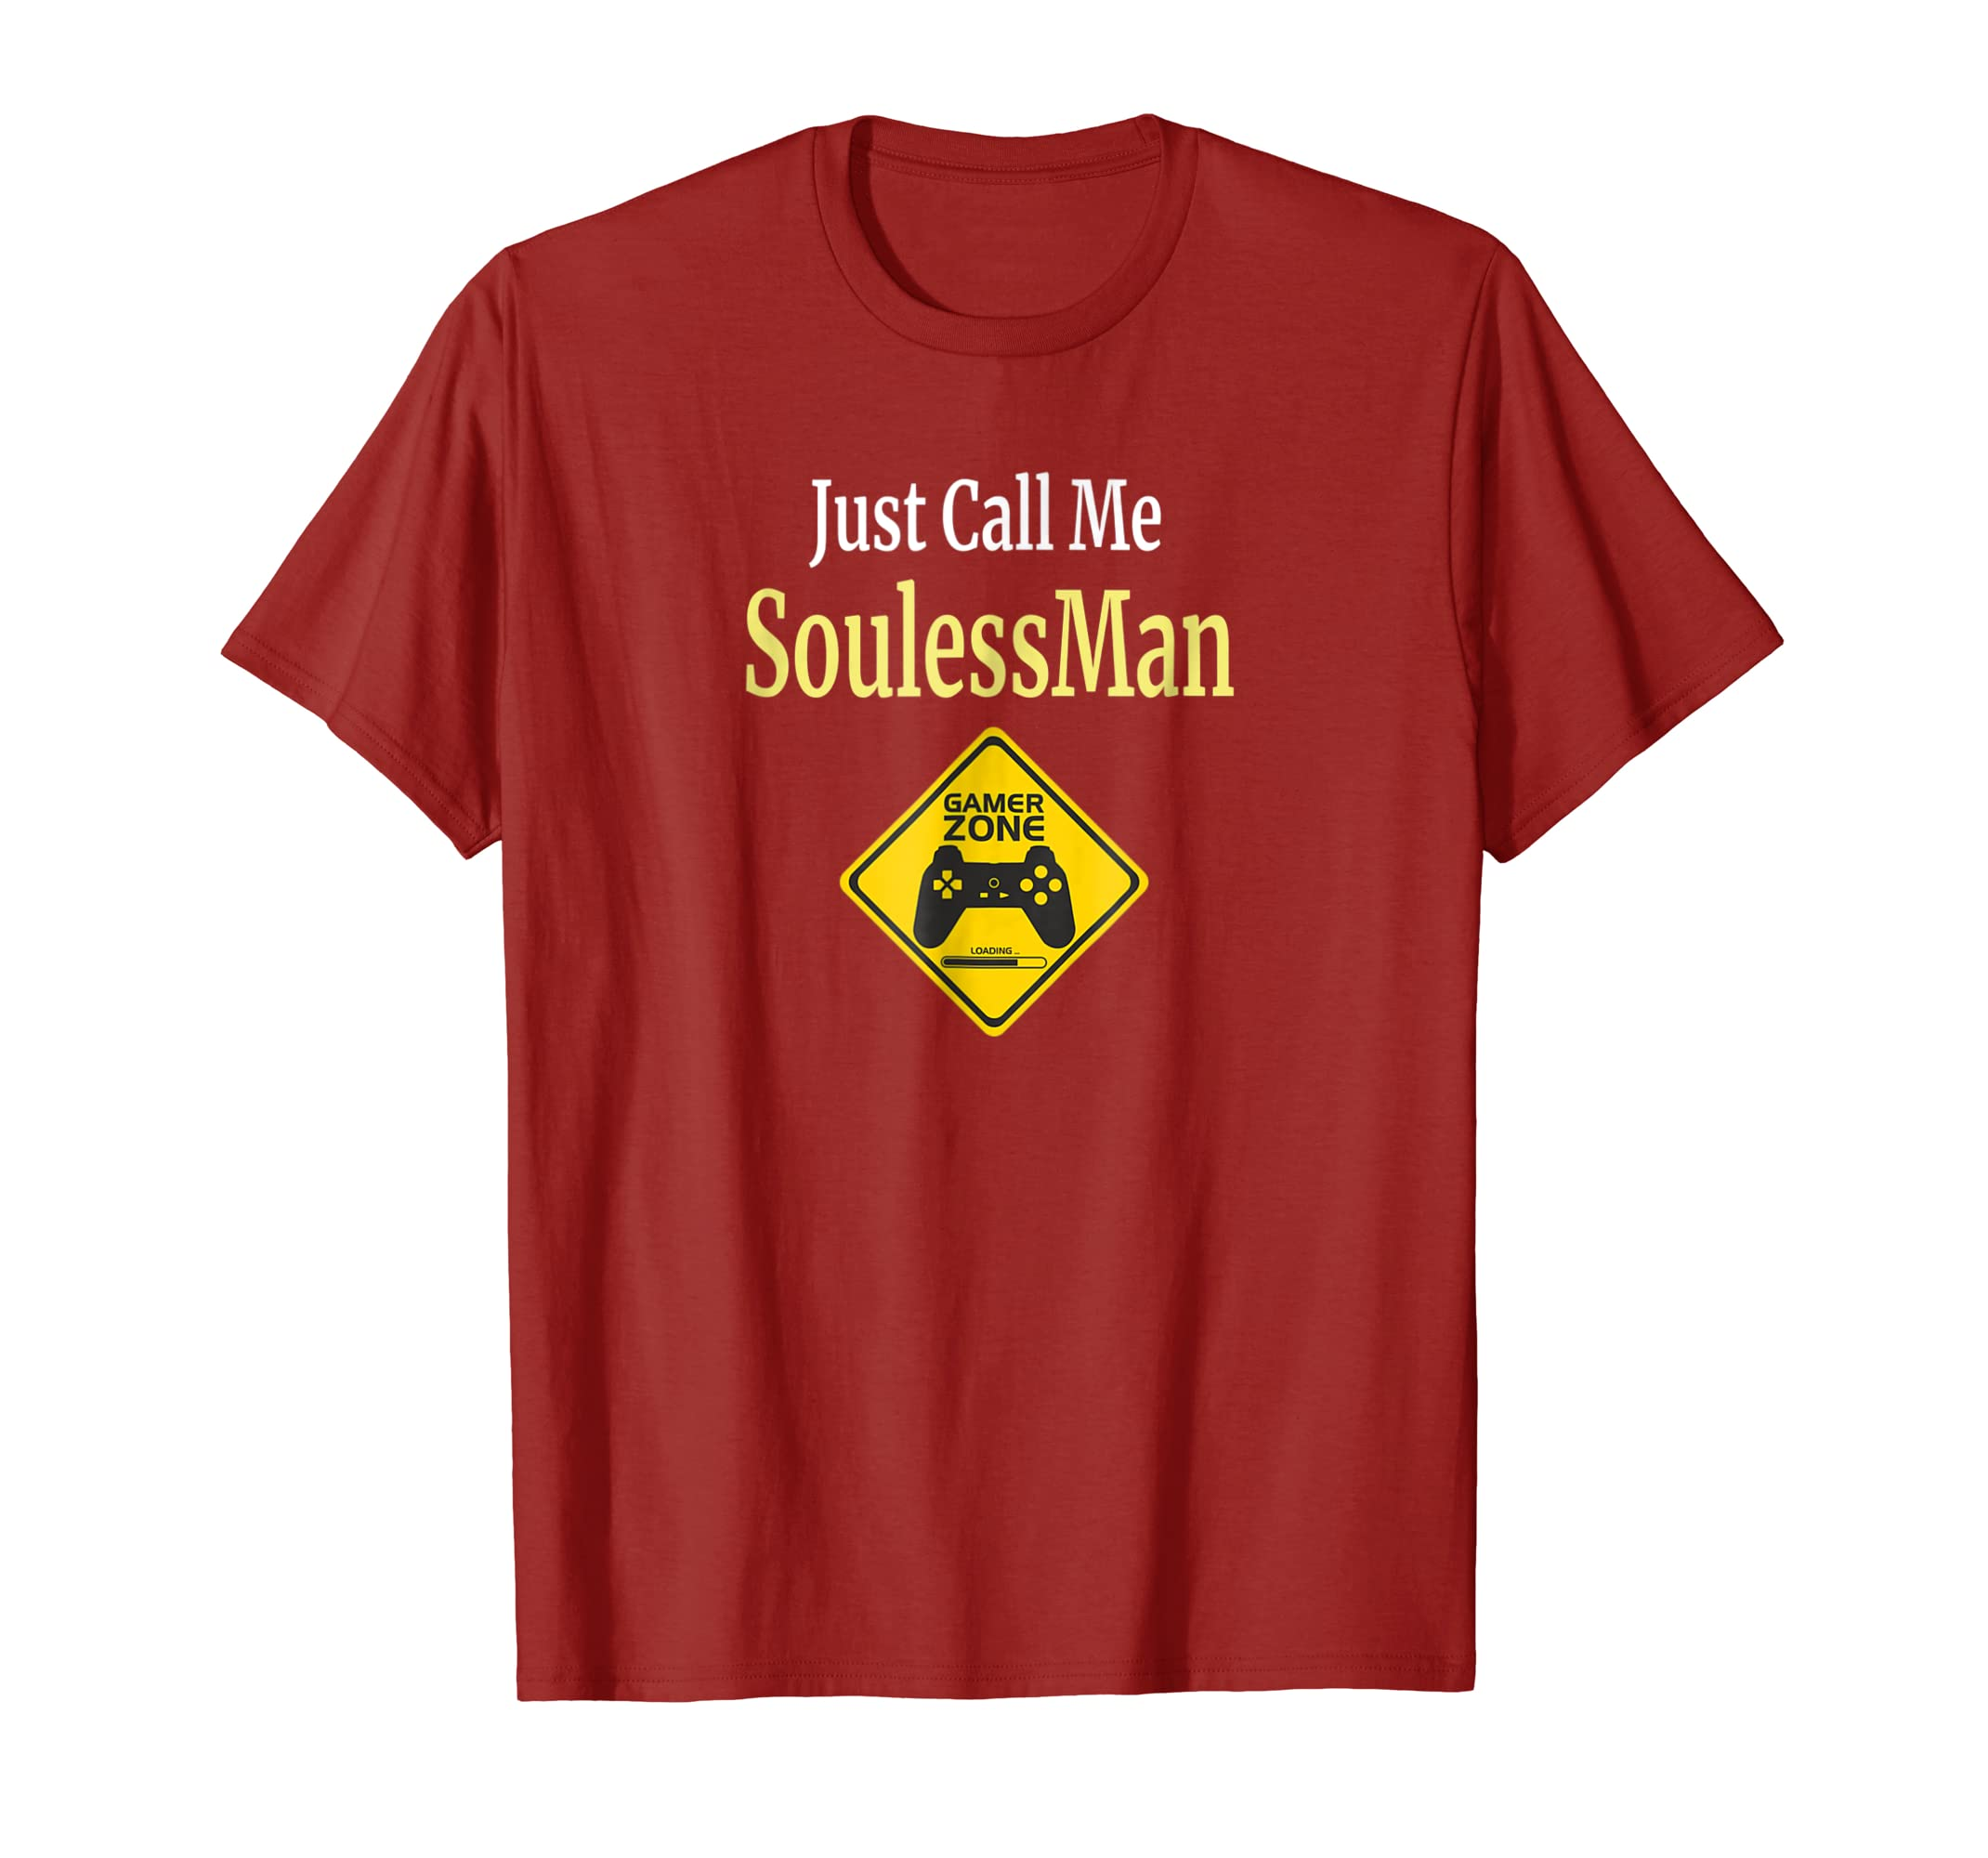 Amazon com: Souless Man Just Call Me T Shirt Gift for Gamers